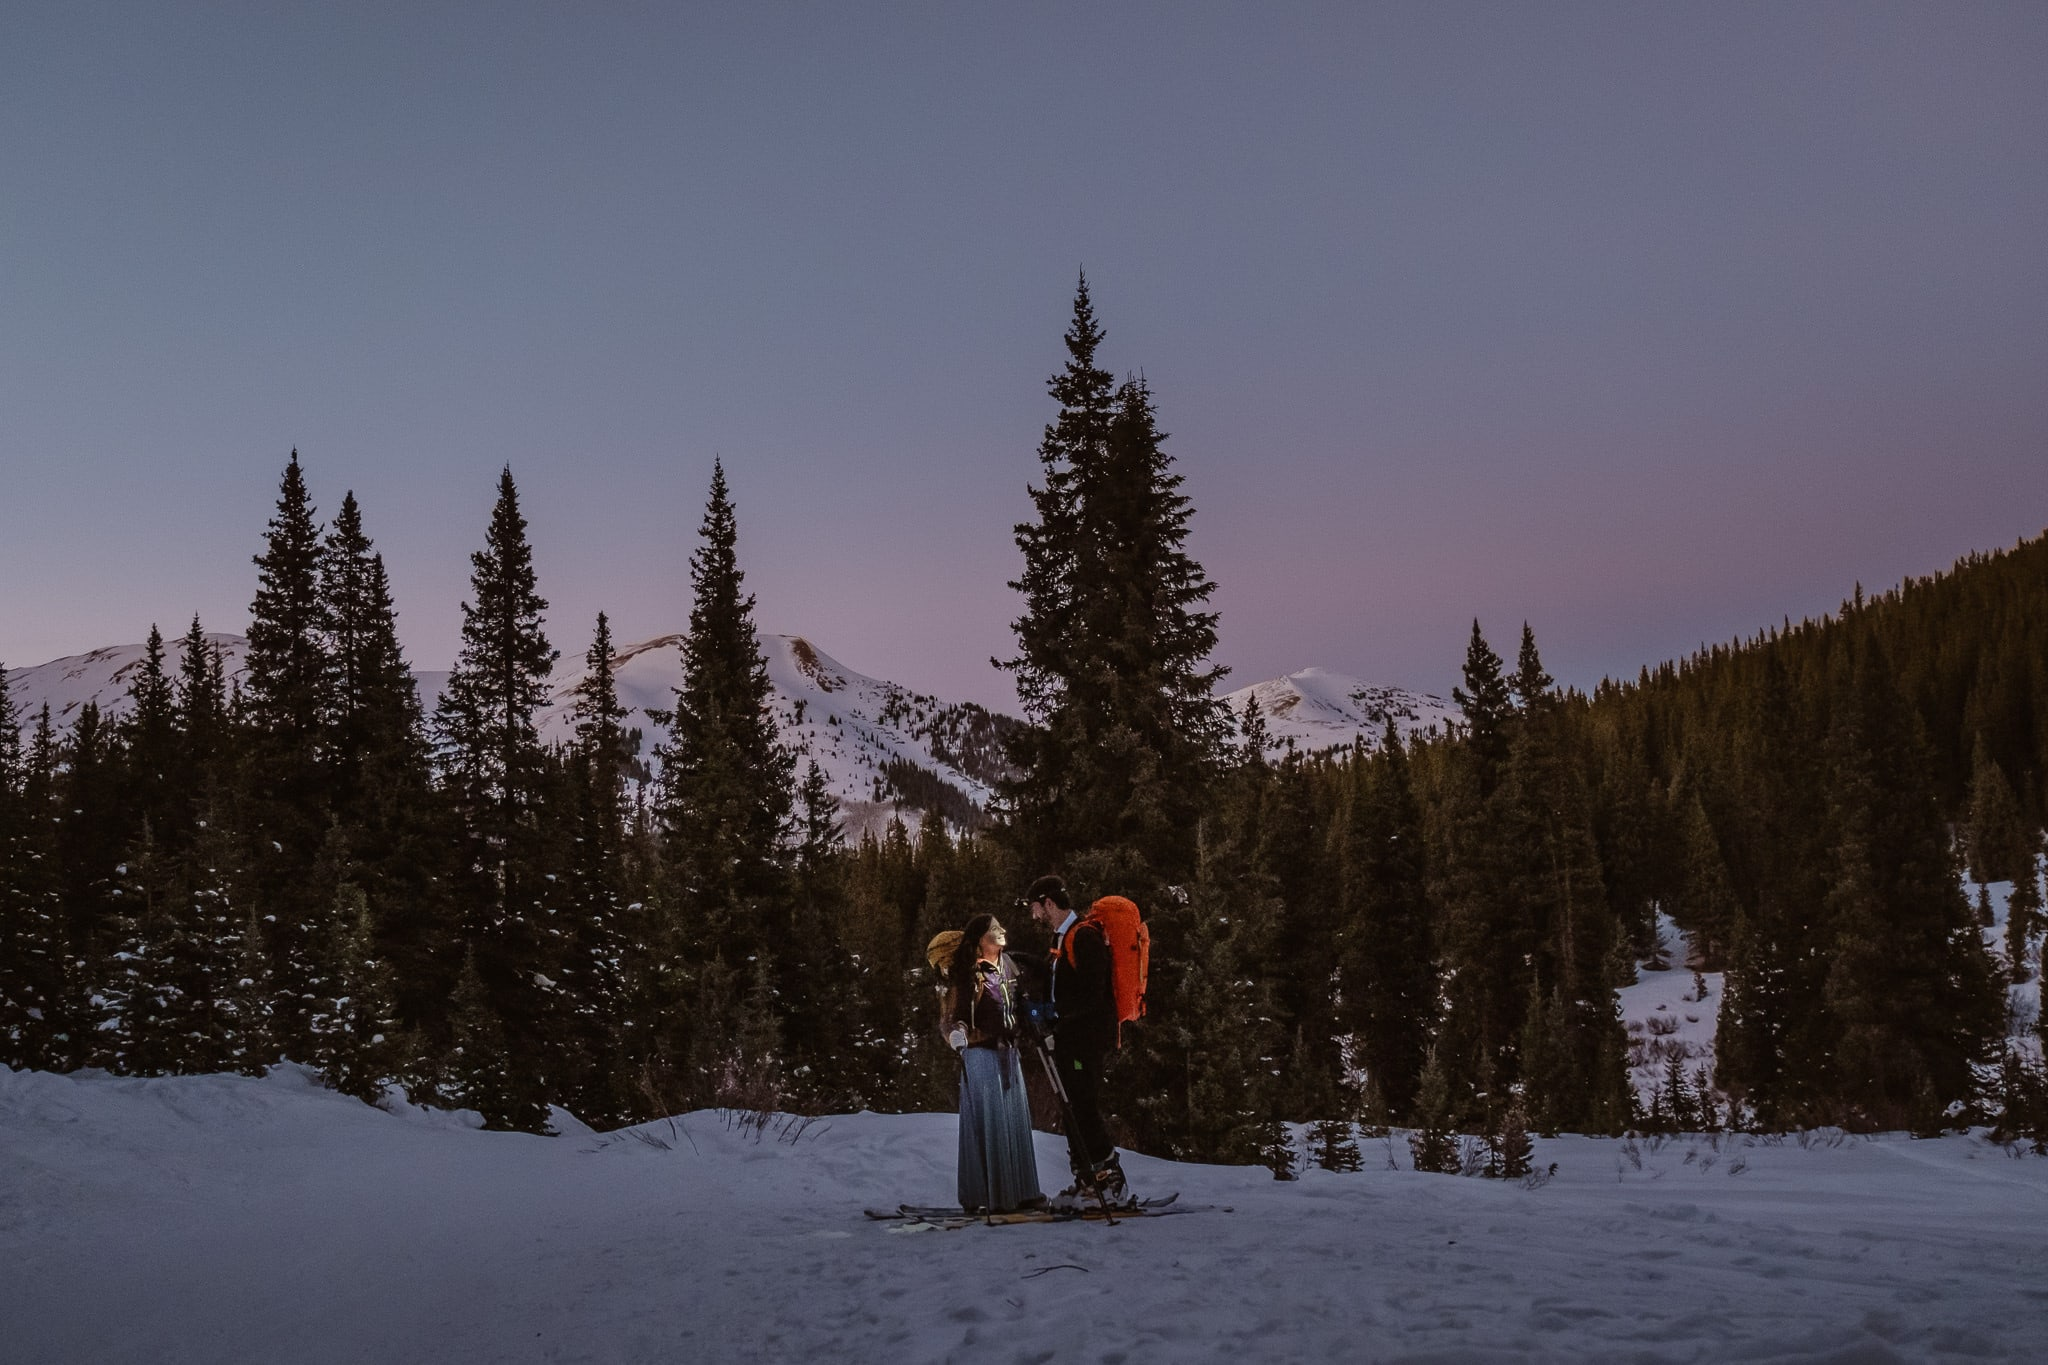 Bride and groom skiing in Colorado mountains at sunset, blue hour wedding photos, Colorado adventure wedding photographer